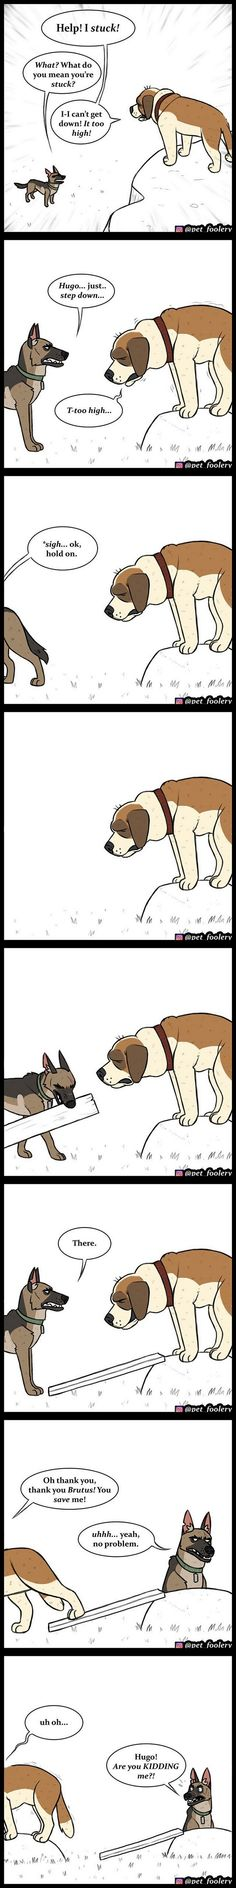 Pixie & Brutus 43 - Types of Comics Animal Jokes, Funny Animal Memes, Cute Funny Animals, Funny Relatable Memes, Hilarious Memes, Cute Funny Cartoons, Funny Cute, Funny Stuff, Cute Comics